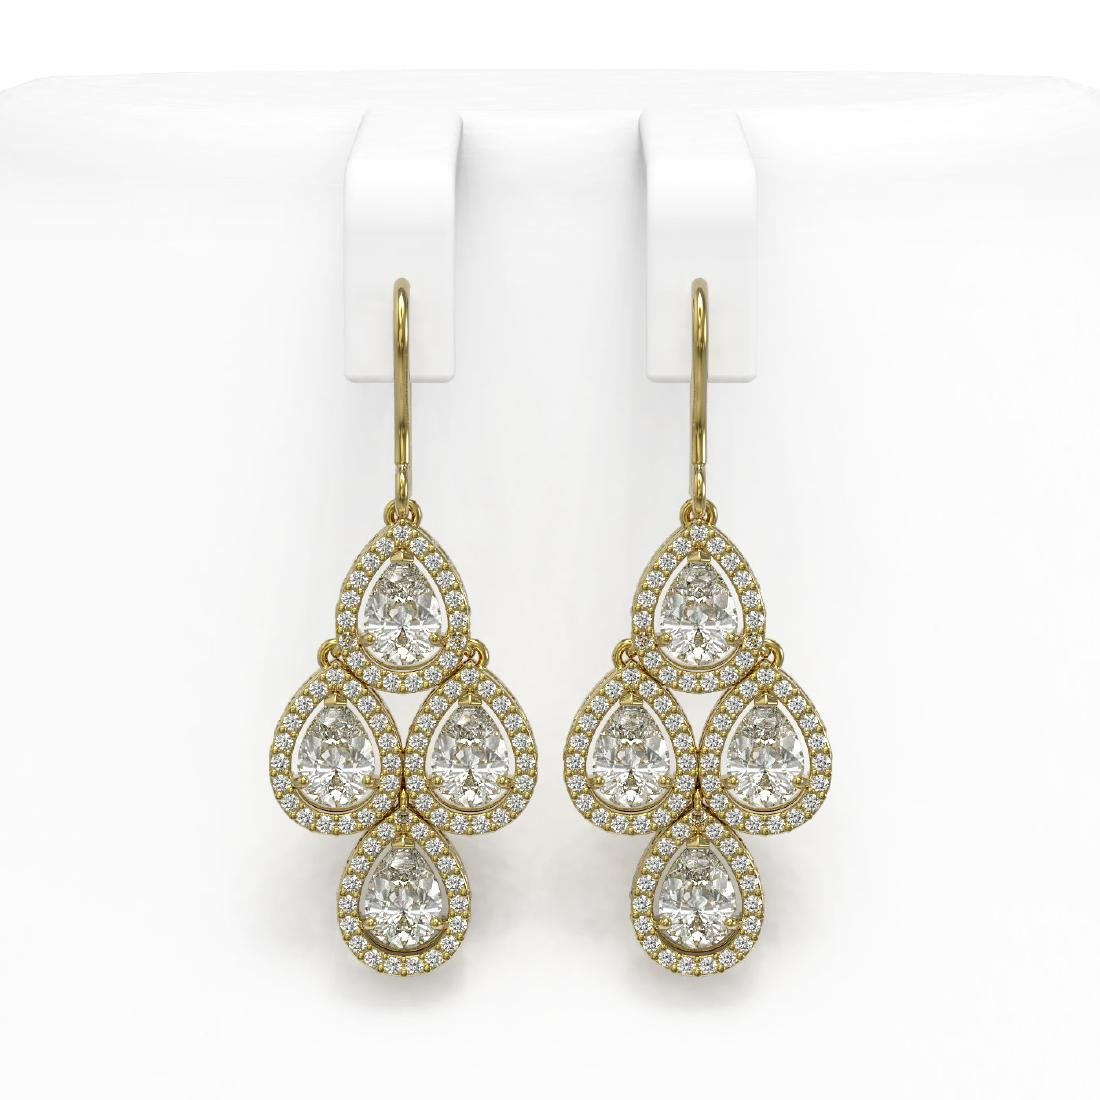 5.85 CTW Pear Diamond Designer Earrings 18K Yellow Gold